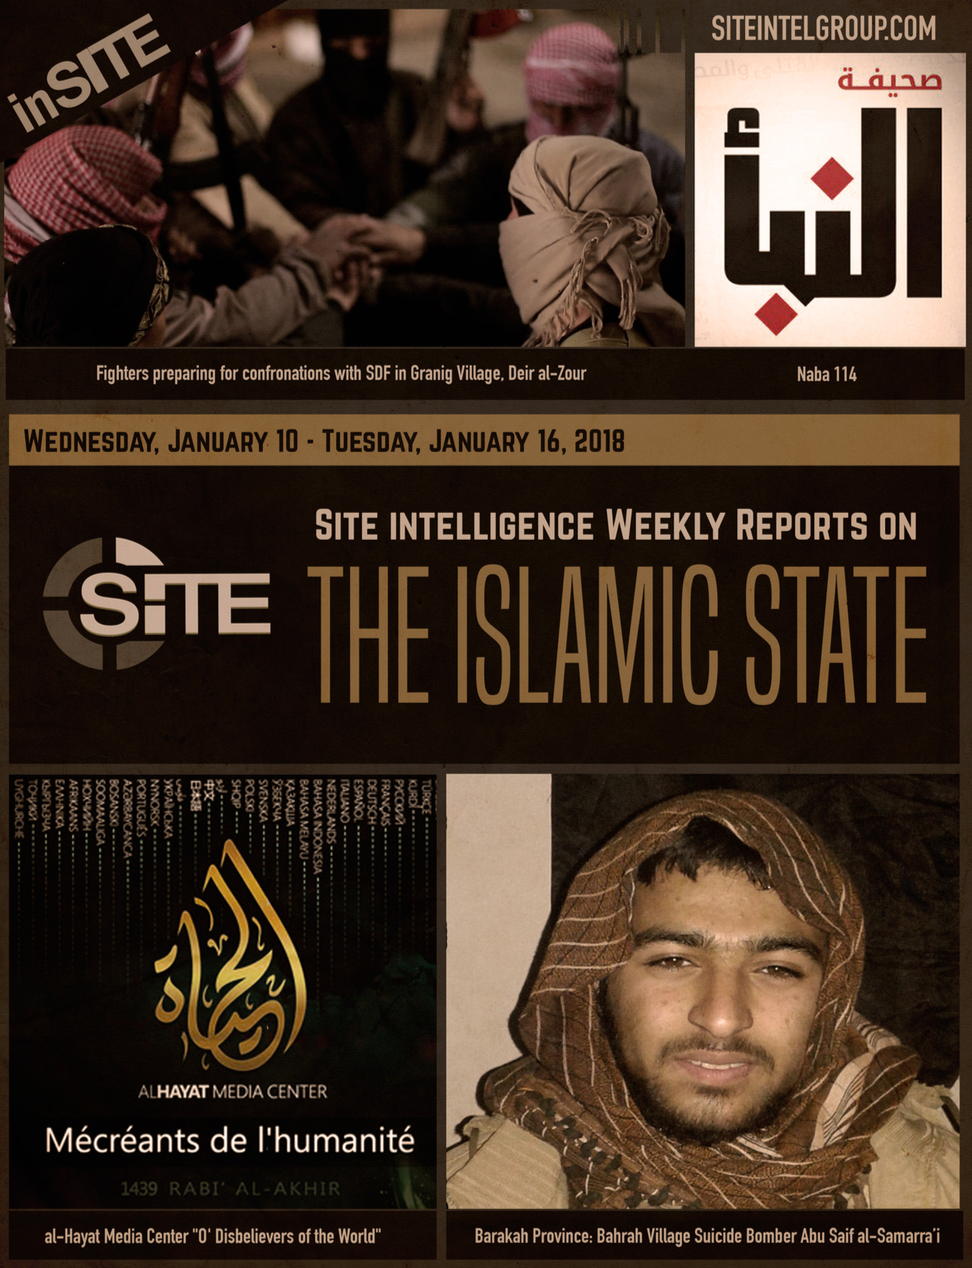 Weekly inSITE on the Islamic State, January 10-16, 2018